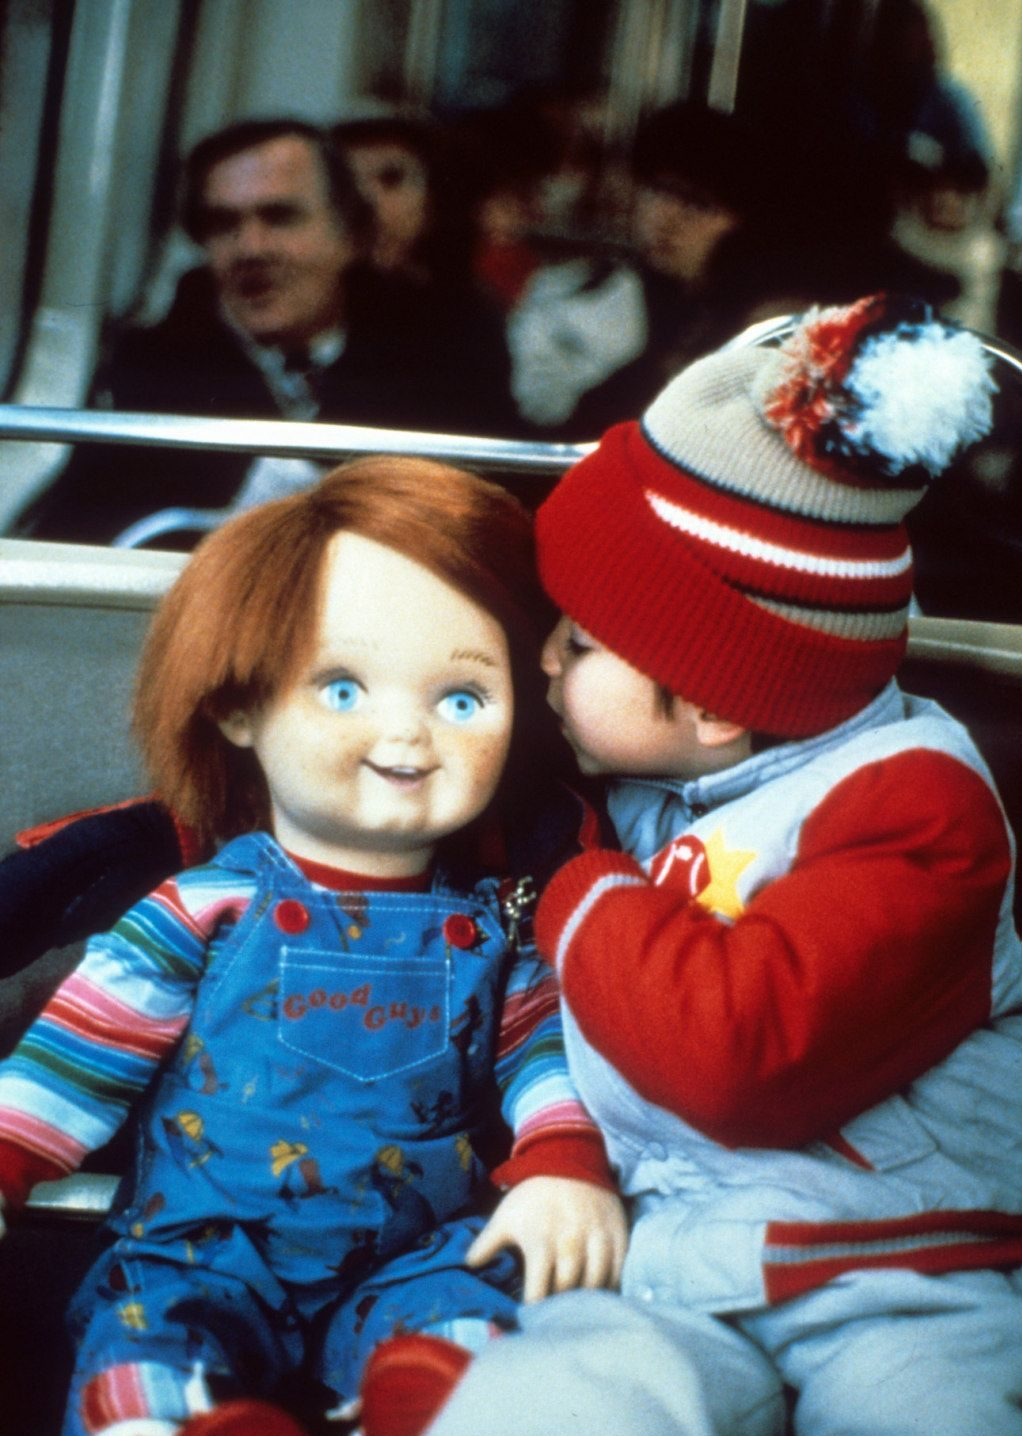 chucky 2 e1561365459639 10 Things You Never Knew About Chucky's Child's Play Franchise